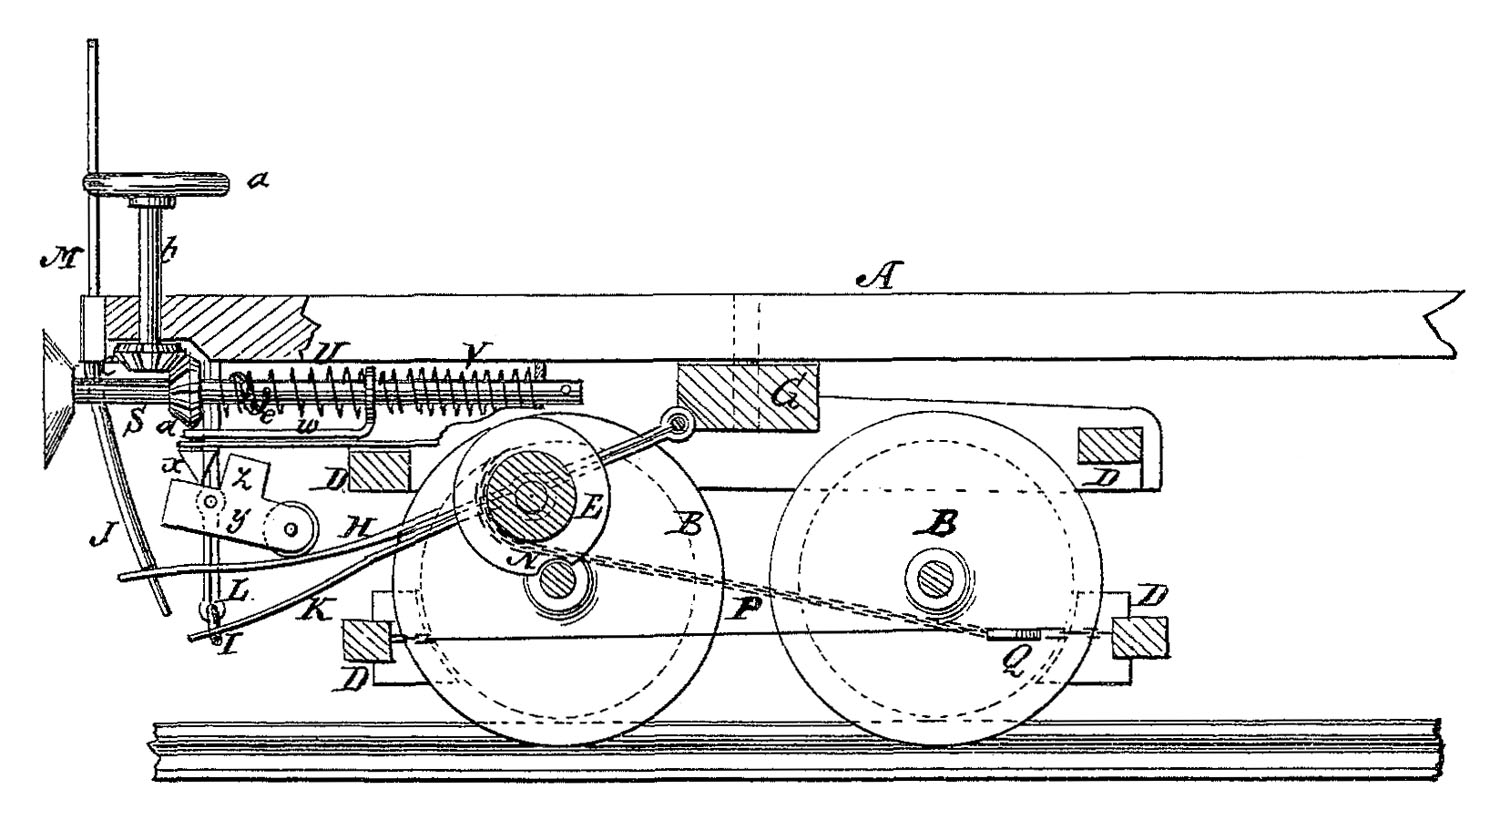 Rail Brake Diagram : Couplers brakes the transcontinental railroad